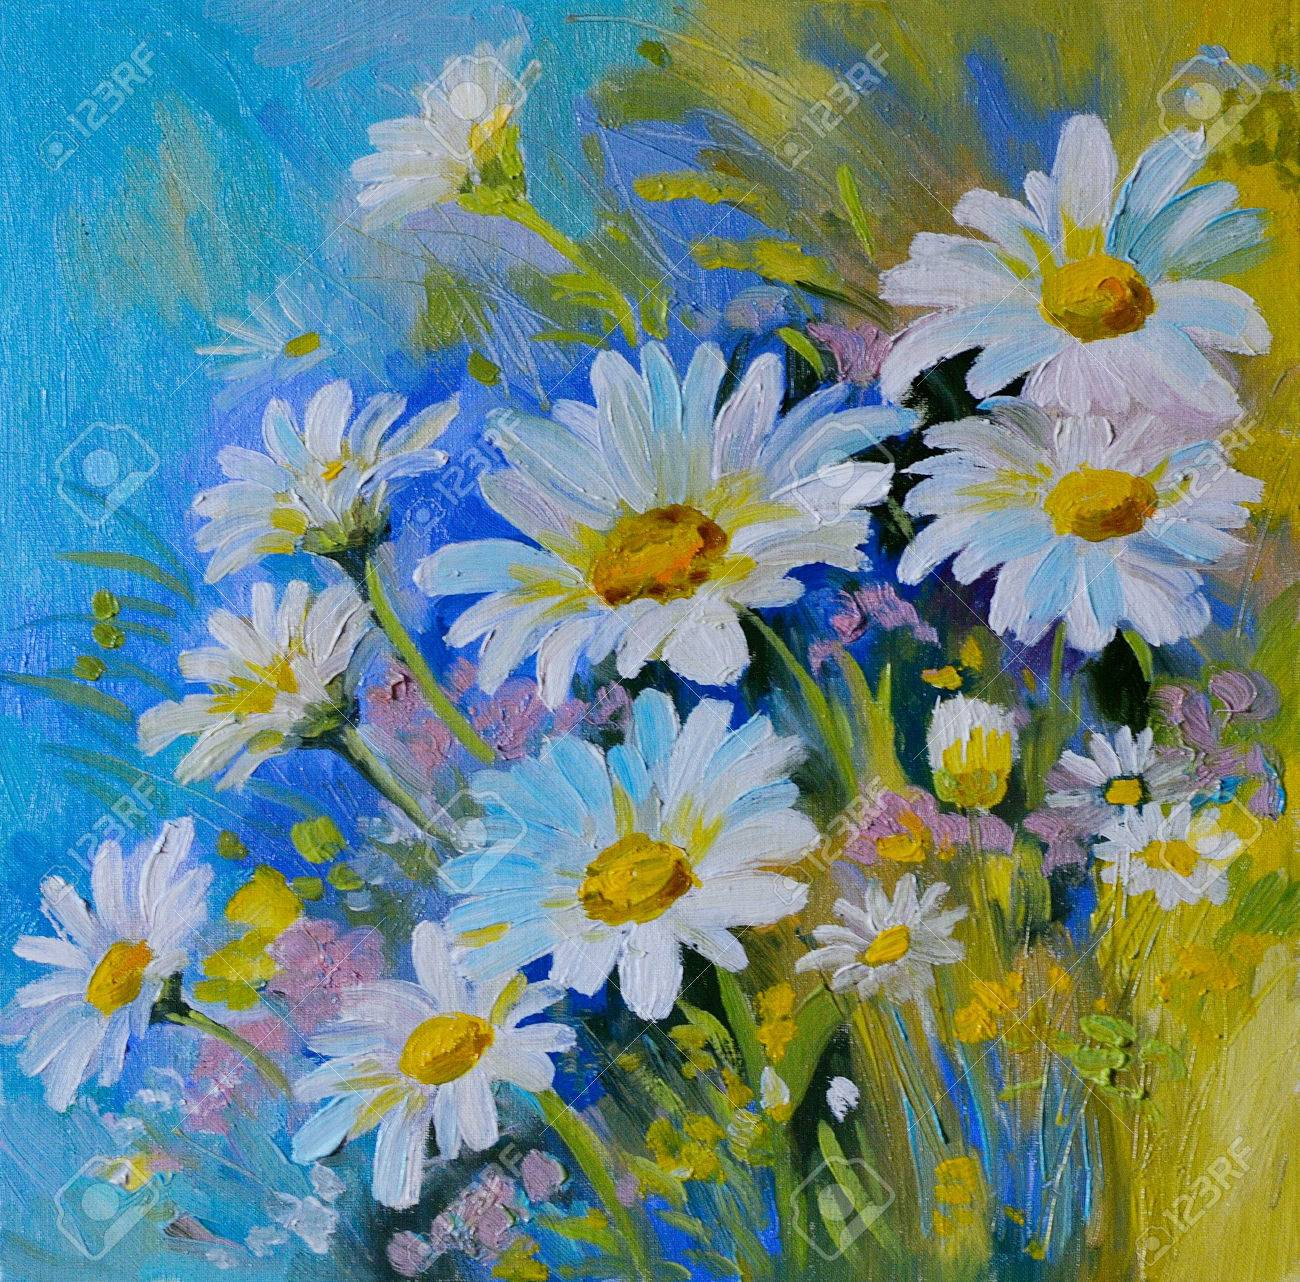 Oil painting abstract illustration of flowers daisies greens oil painting abstract illustration of flowers daisies greens spring stock illustration izmirmasajfo Gallery